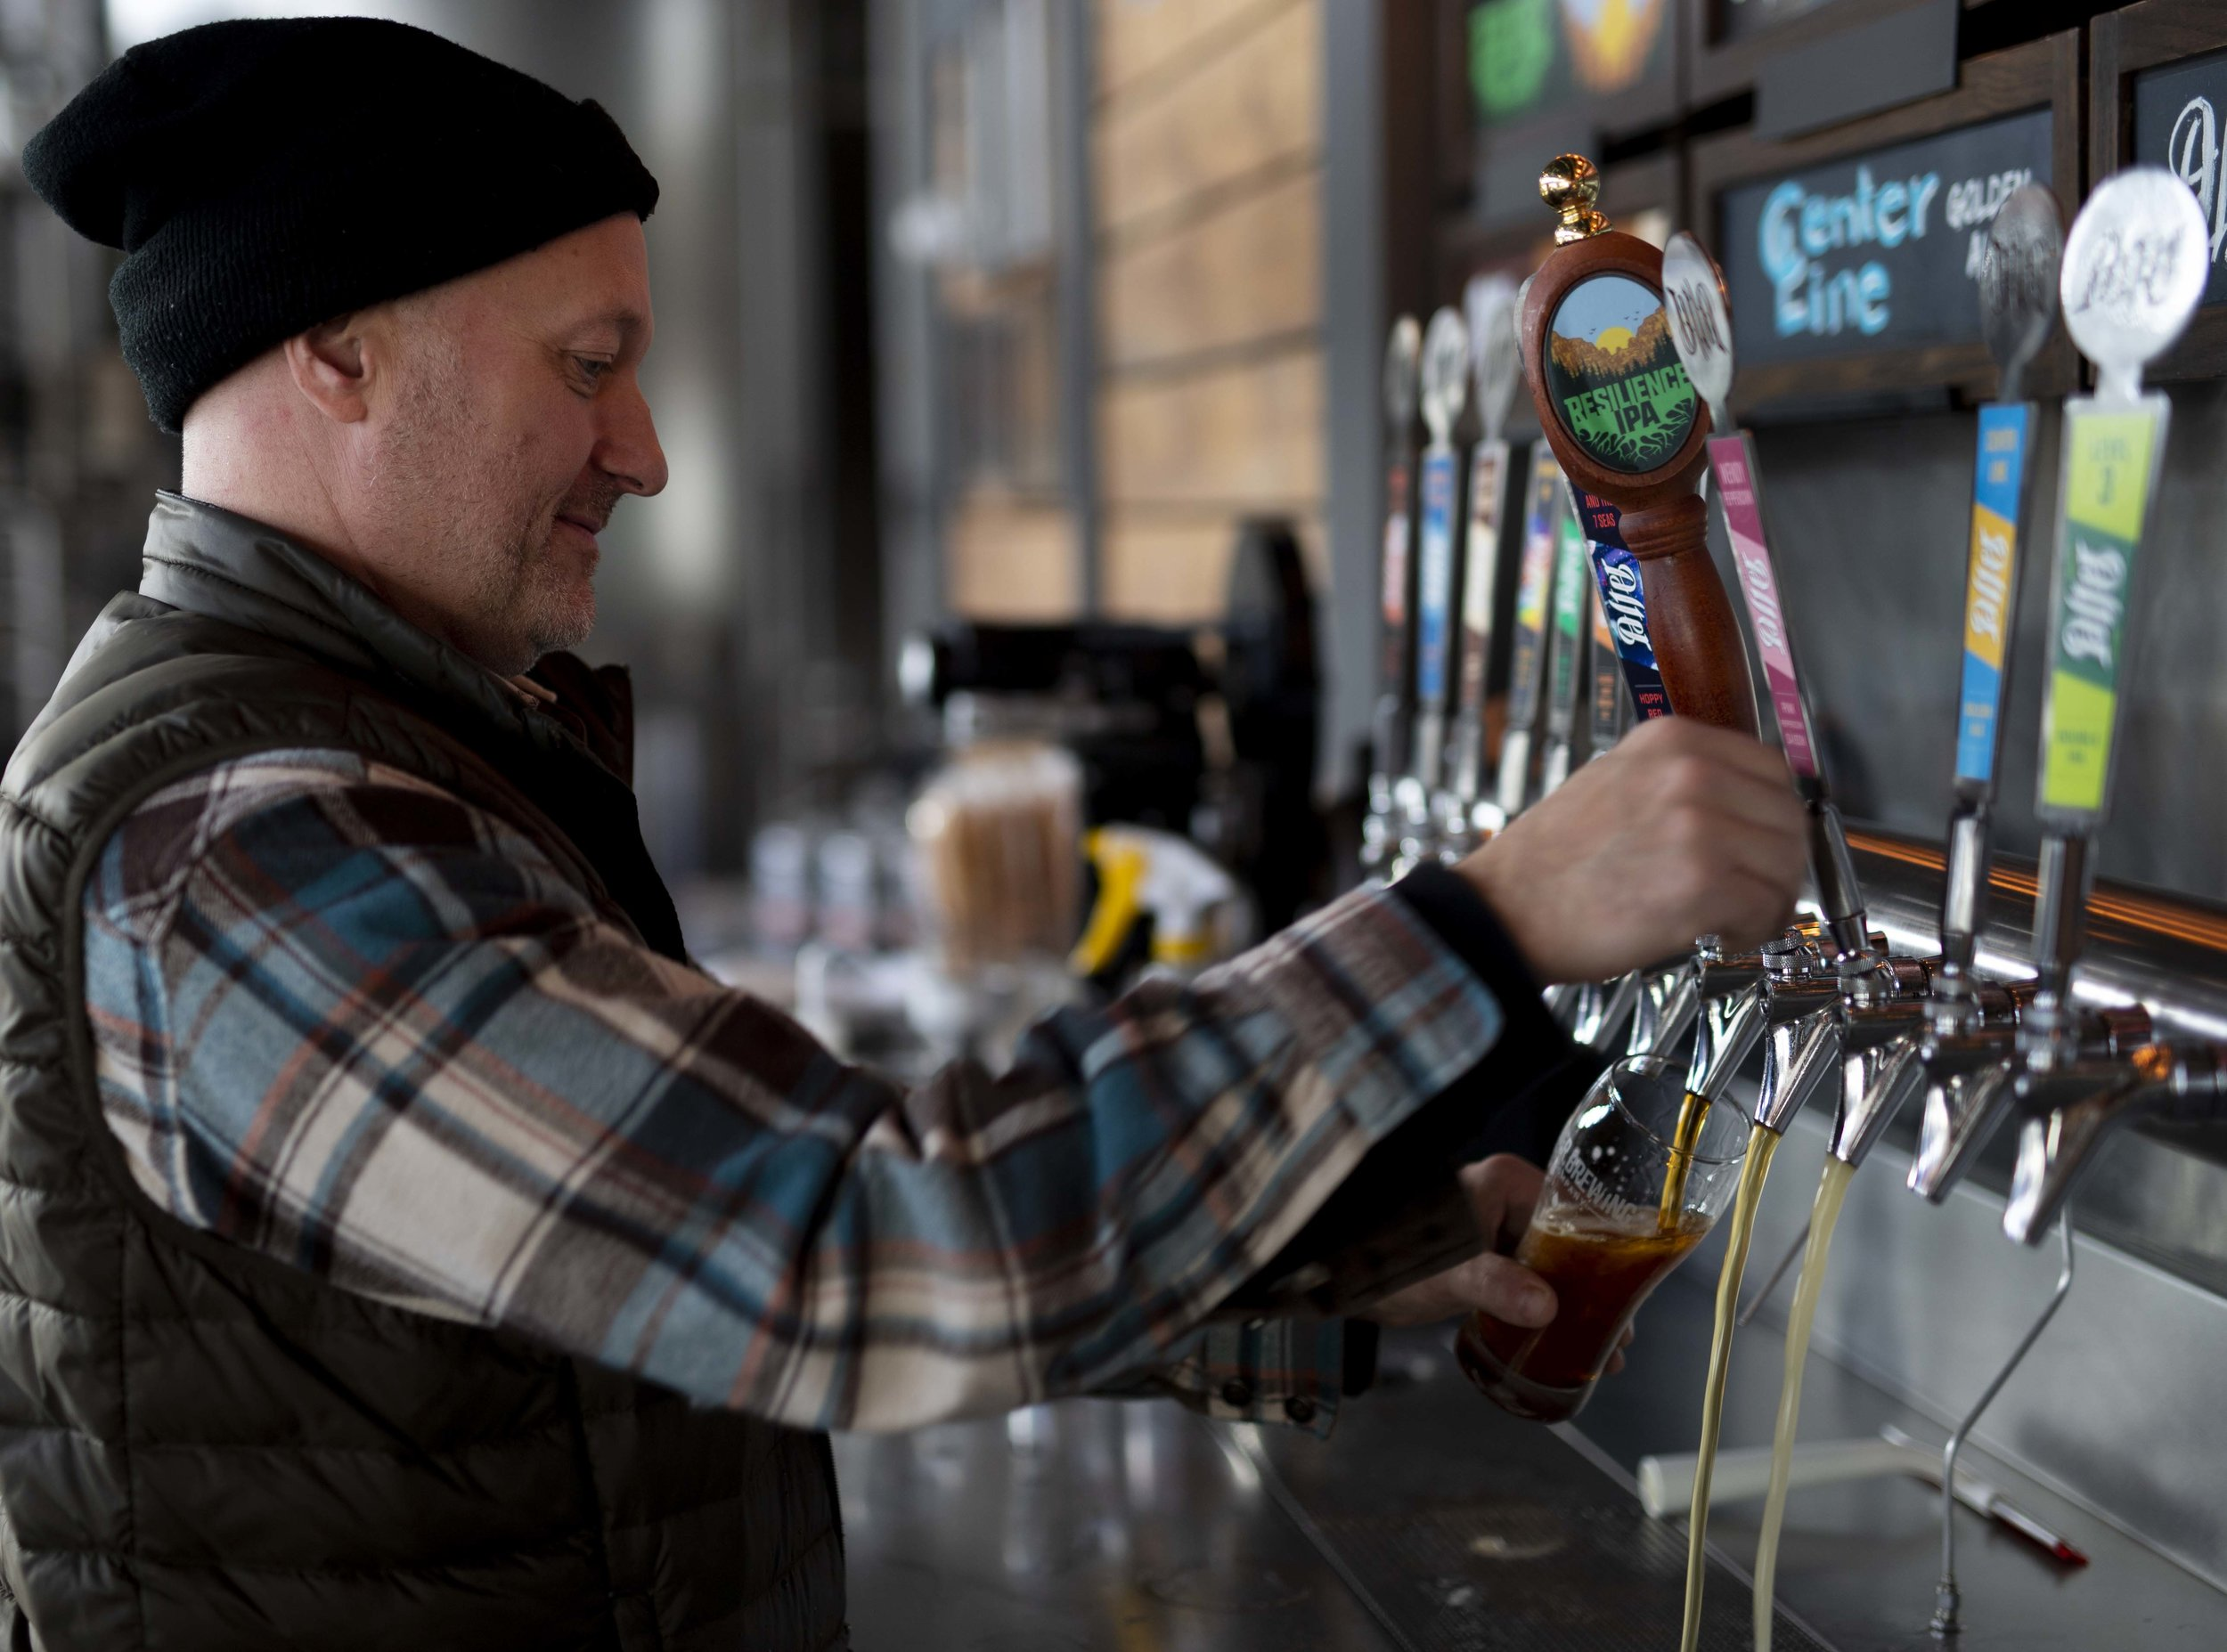 Co-founder Mark Hedrick pours a pint of  Resilience IPA.